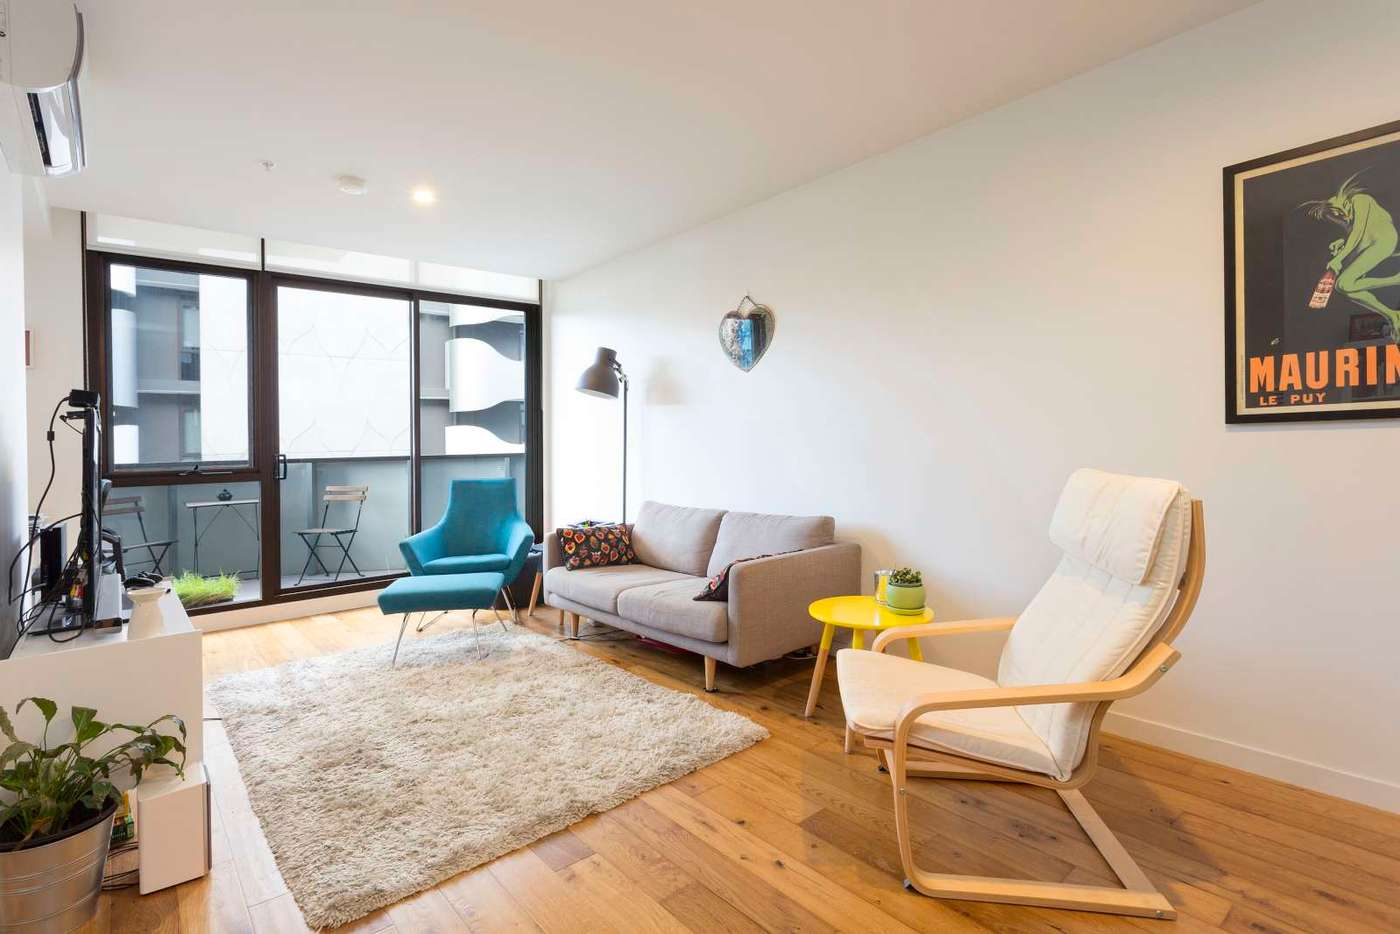 Main view of Homely apartment listing, 6216/172 Edward Street, Brunswick East VIC 3057